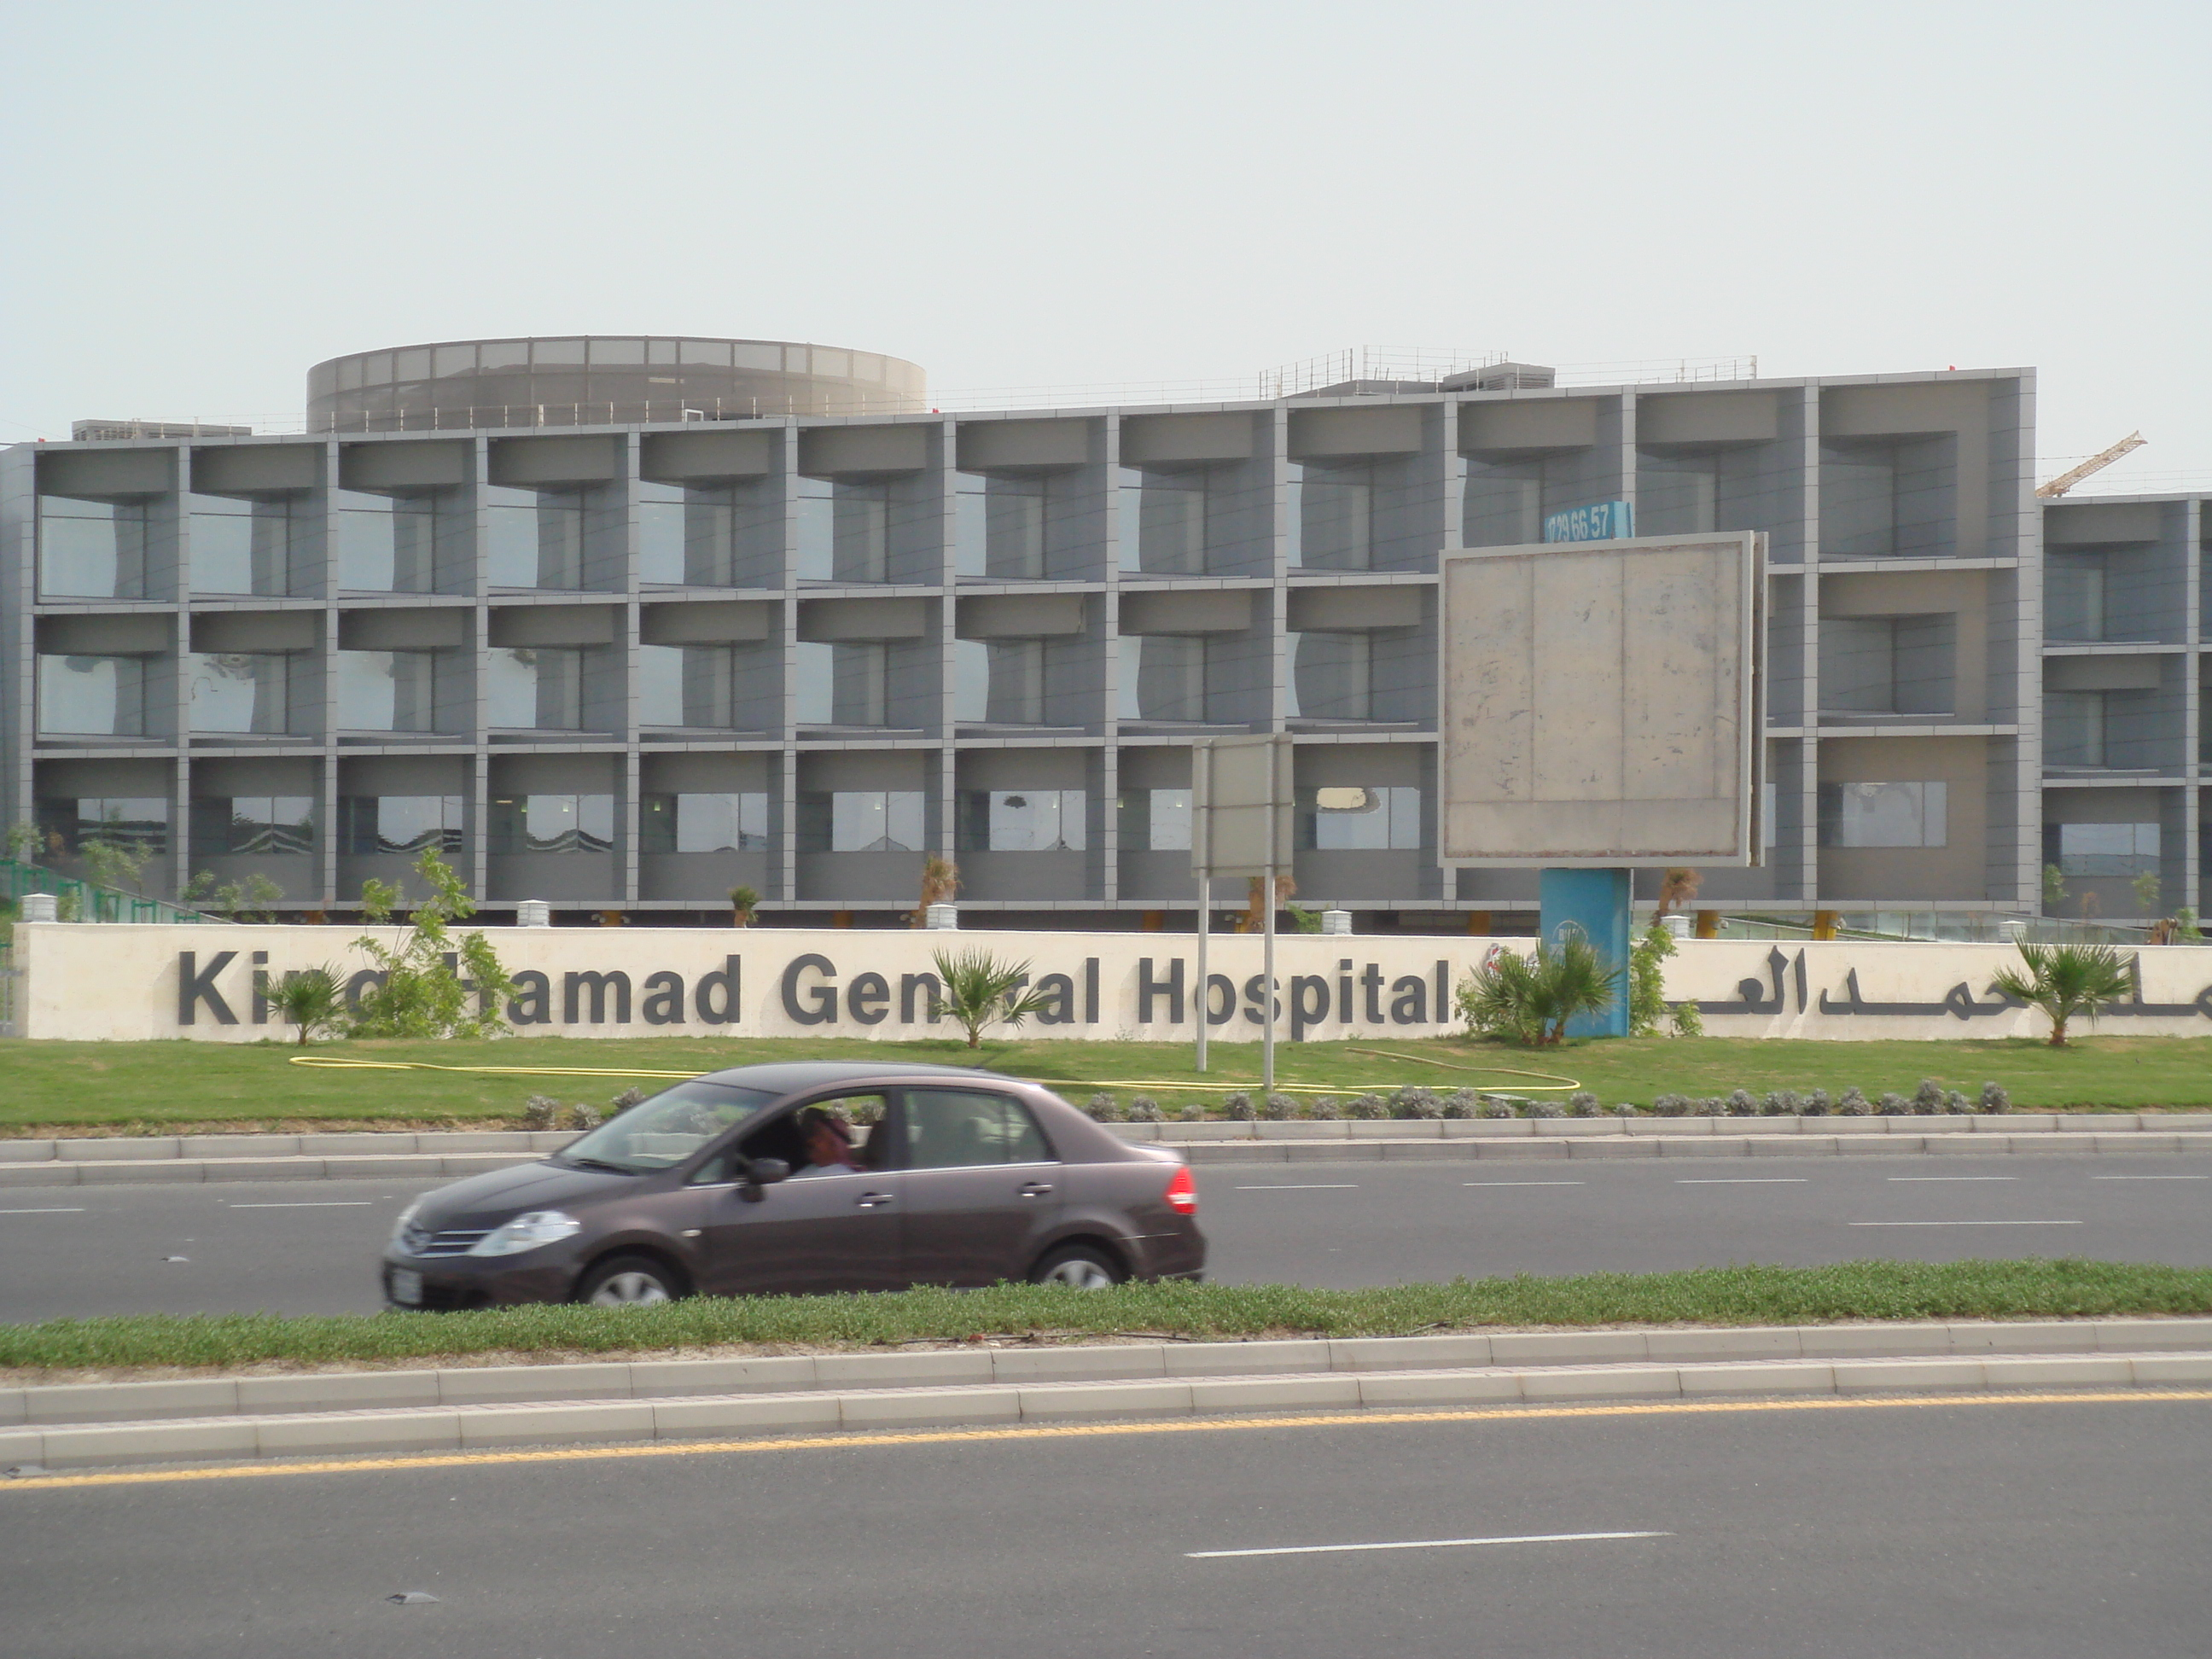 King Hamad General Hospital at Muharraq